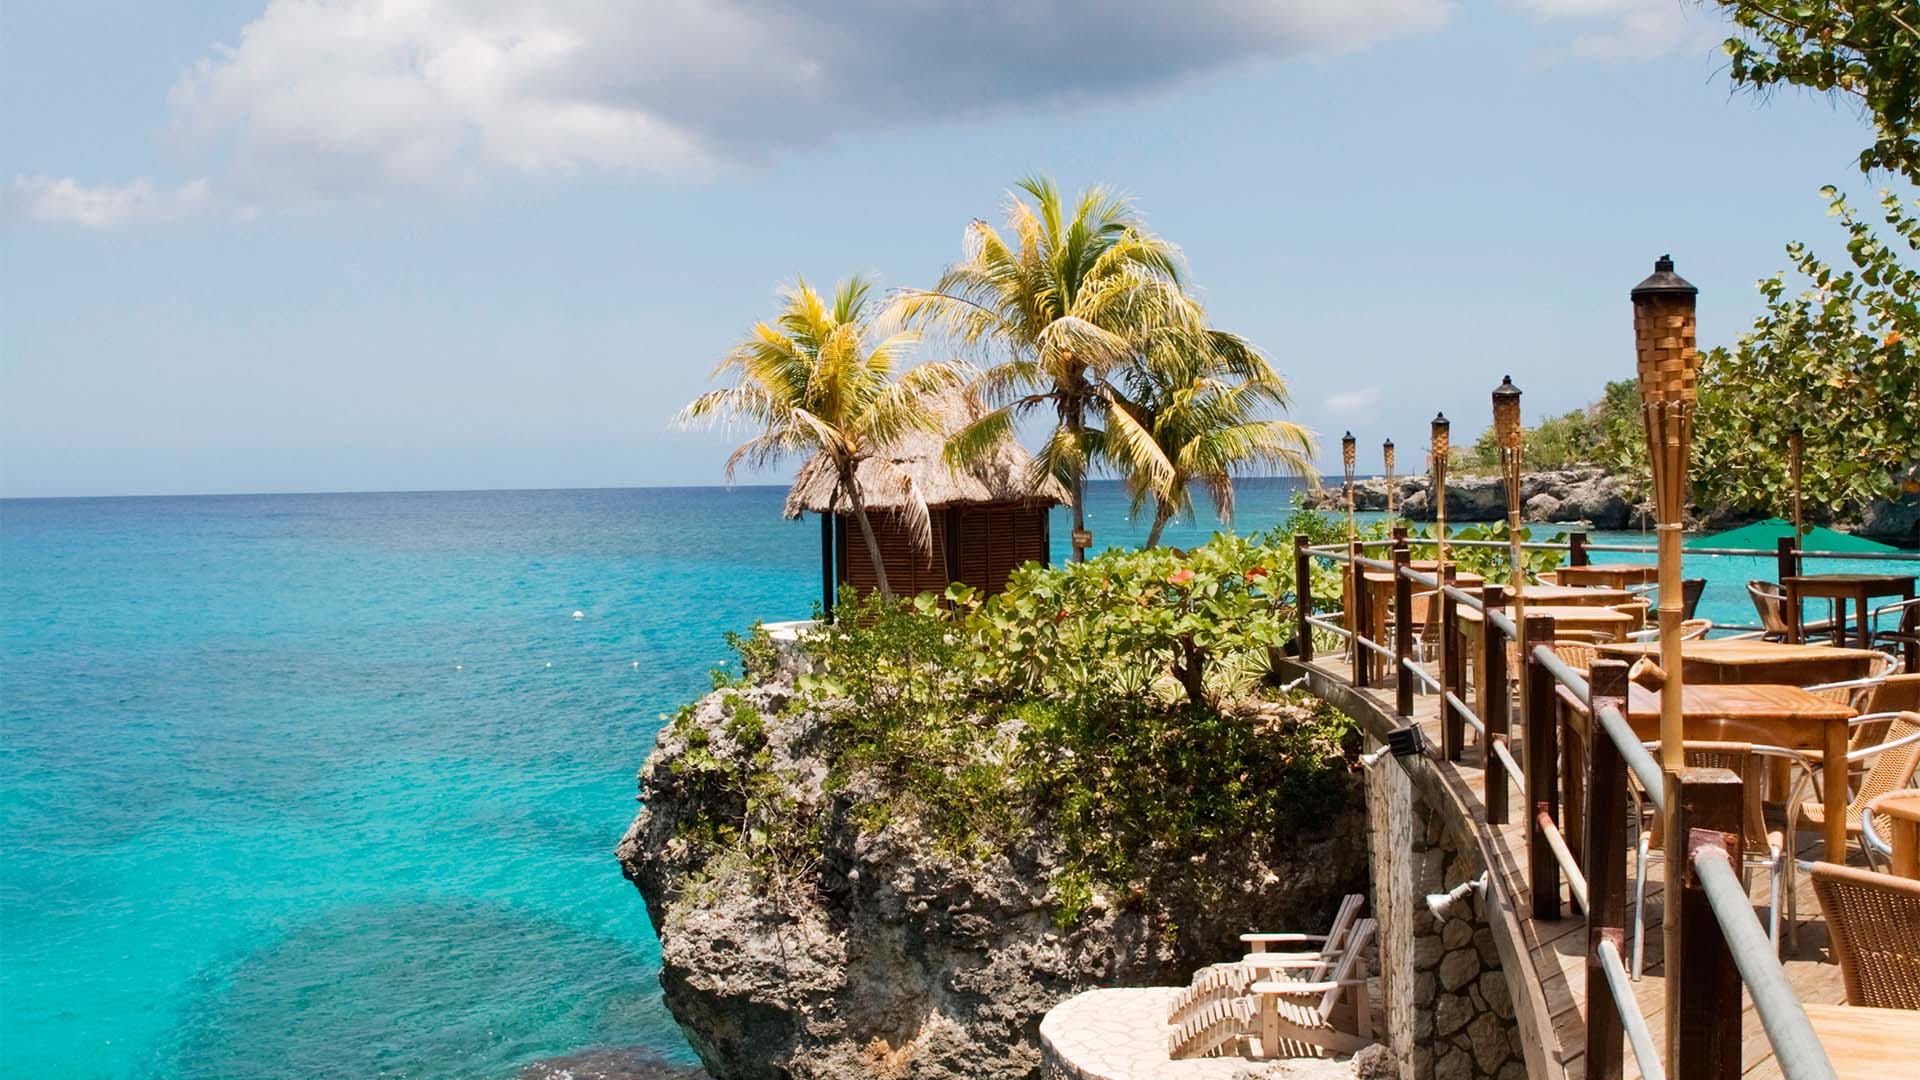 A view from the terrace at The Rockhouse Hotel in Negril